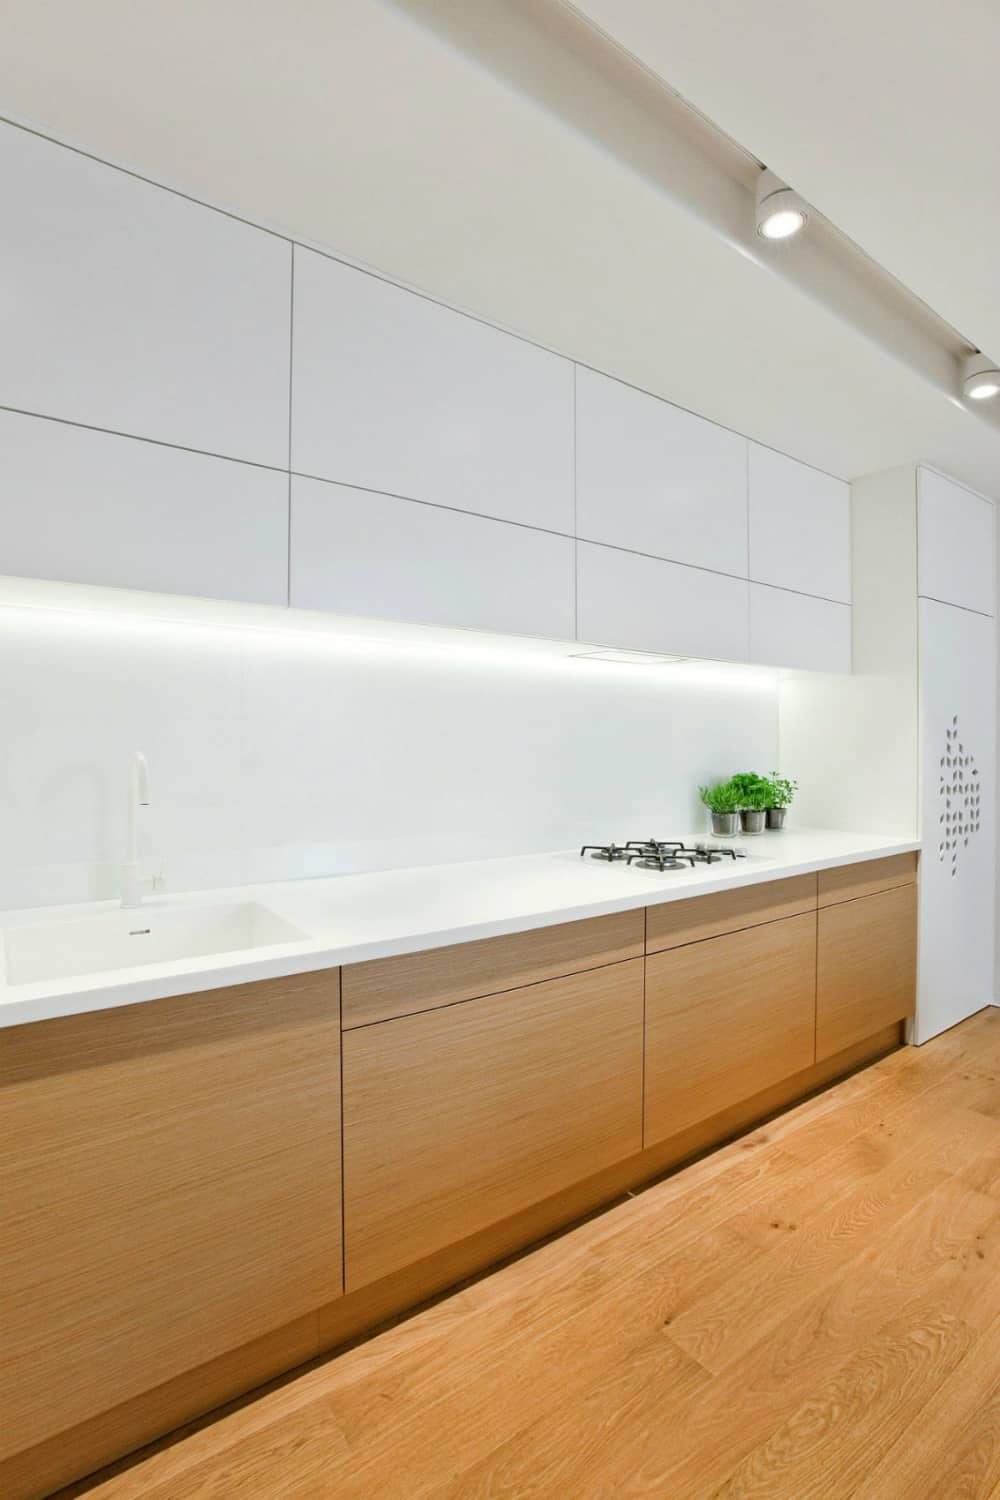 Built-in white light illuminates the worktop